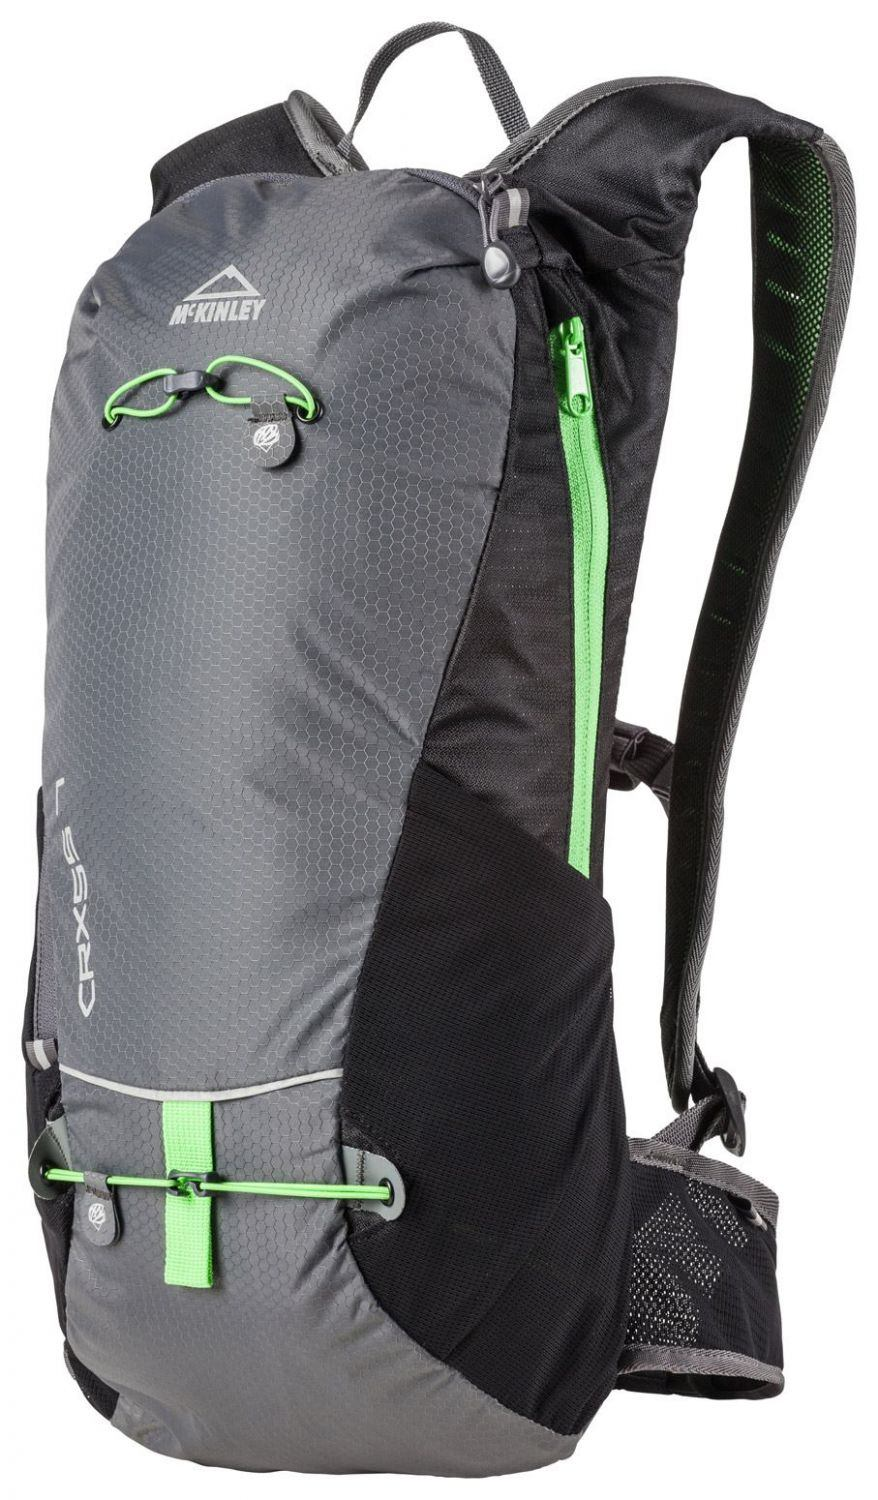 McKinley Crxss 7 Multifunktionsrucksack (Farbe: 904 anthracite/black/lime)